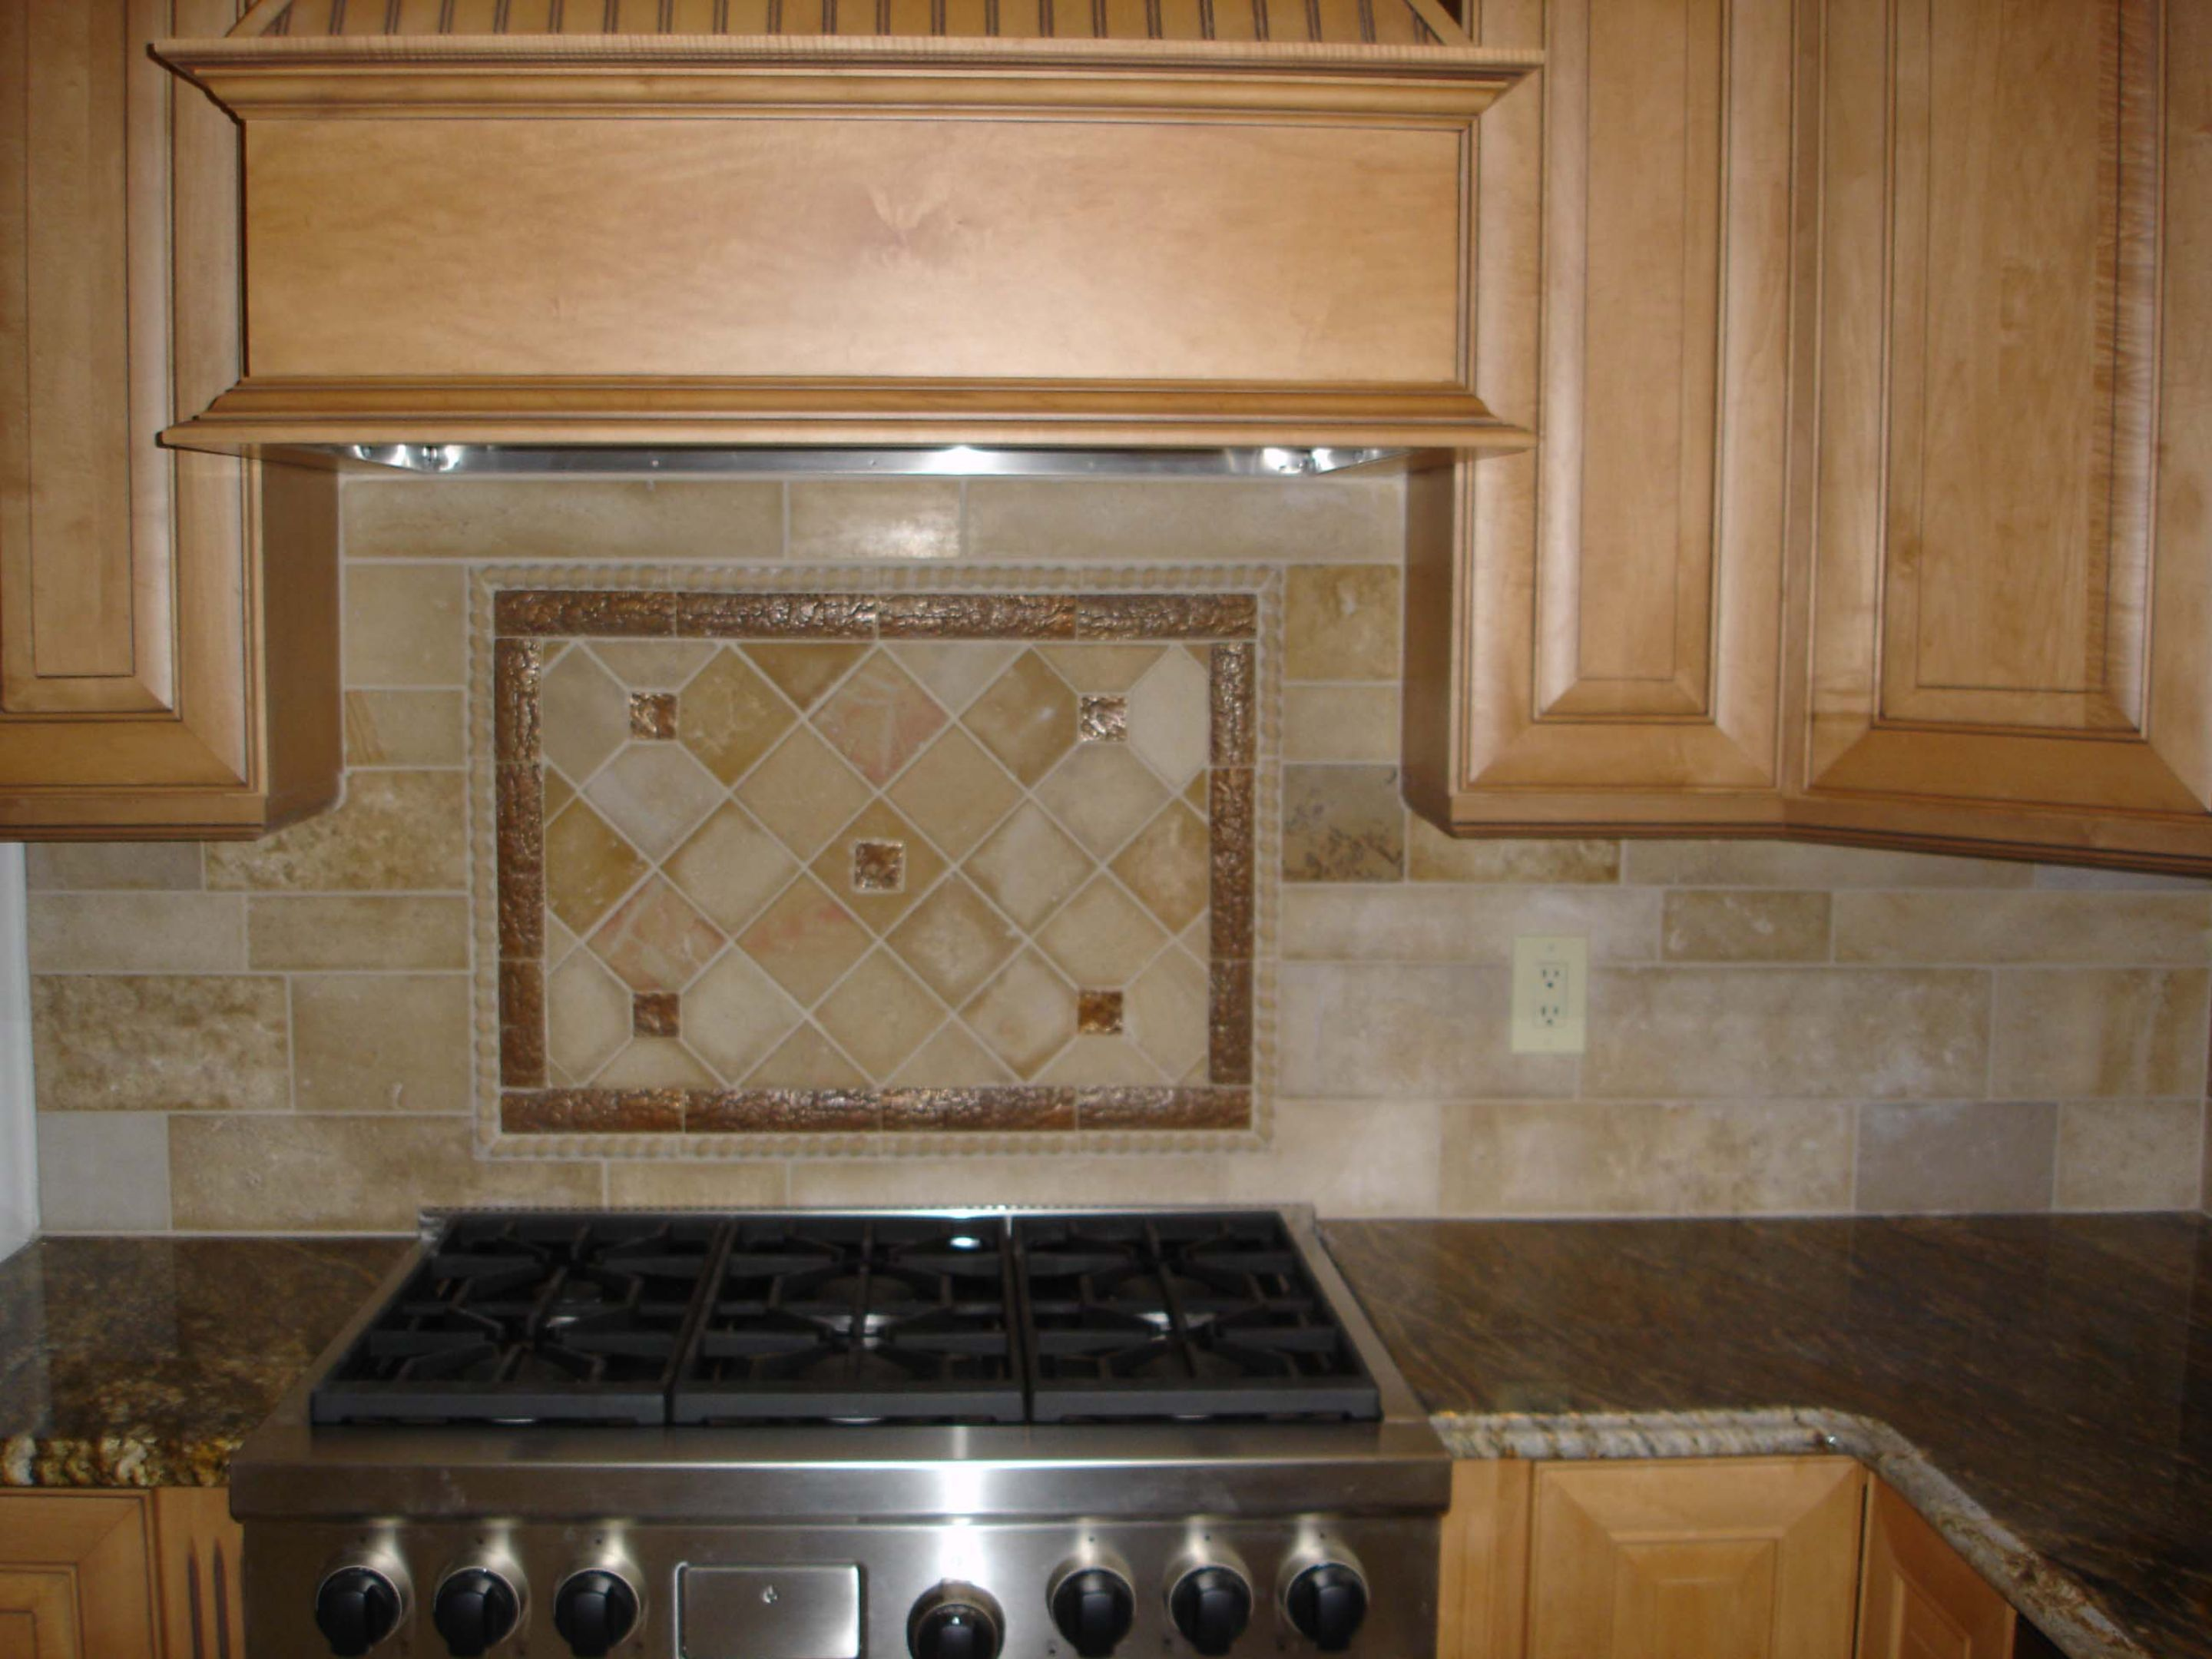 Backsplash Accent Ideas Kitchen Countertops And Backsplashes Stone And Metal